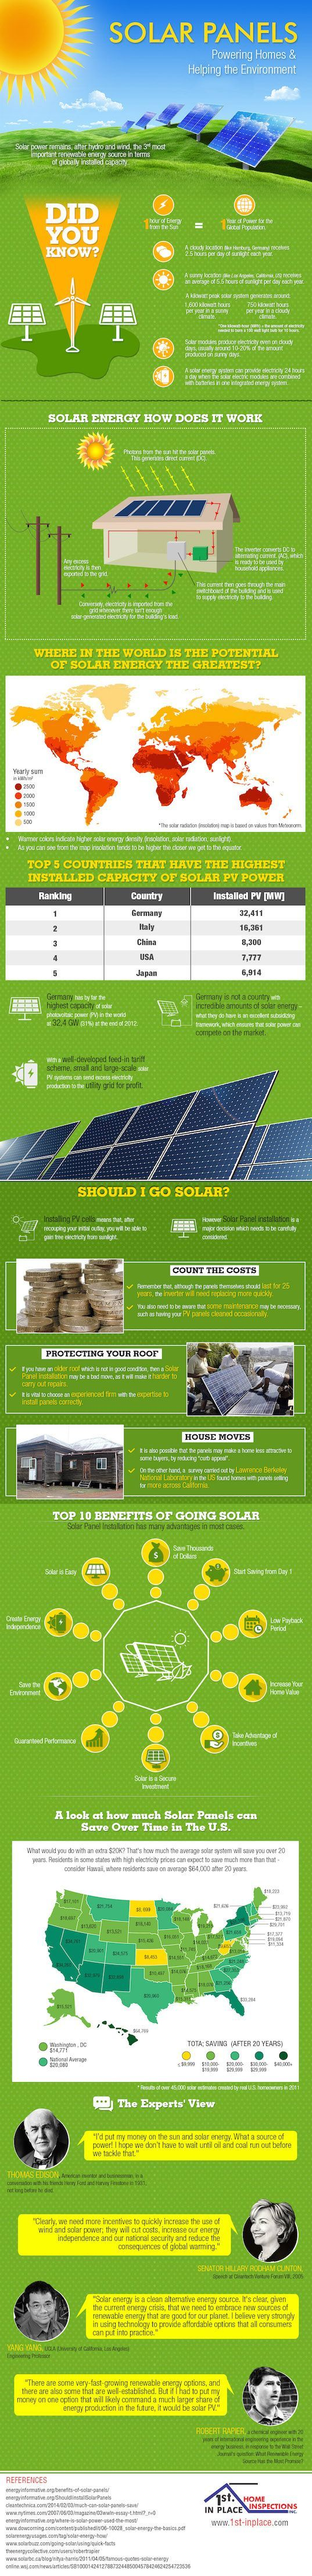 Infographic Learn How Solar Panels Work And The Benefits Of Going Solar Solar Panels How Solar Panels Work Solar